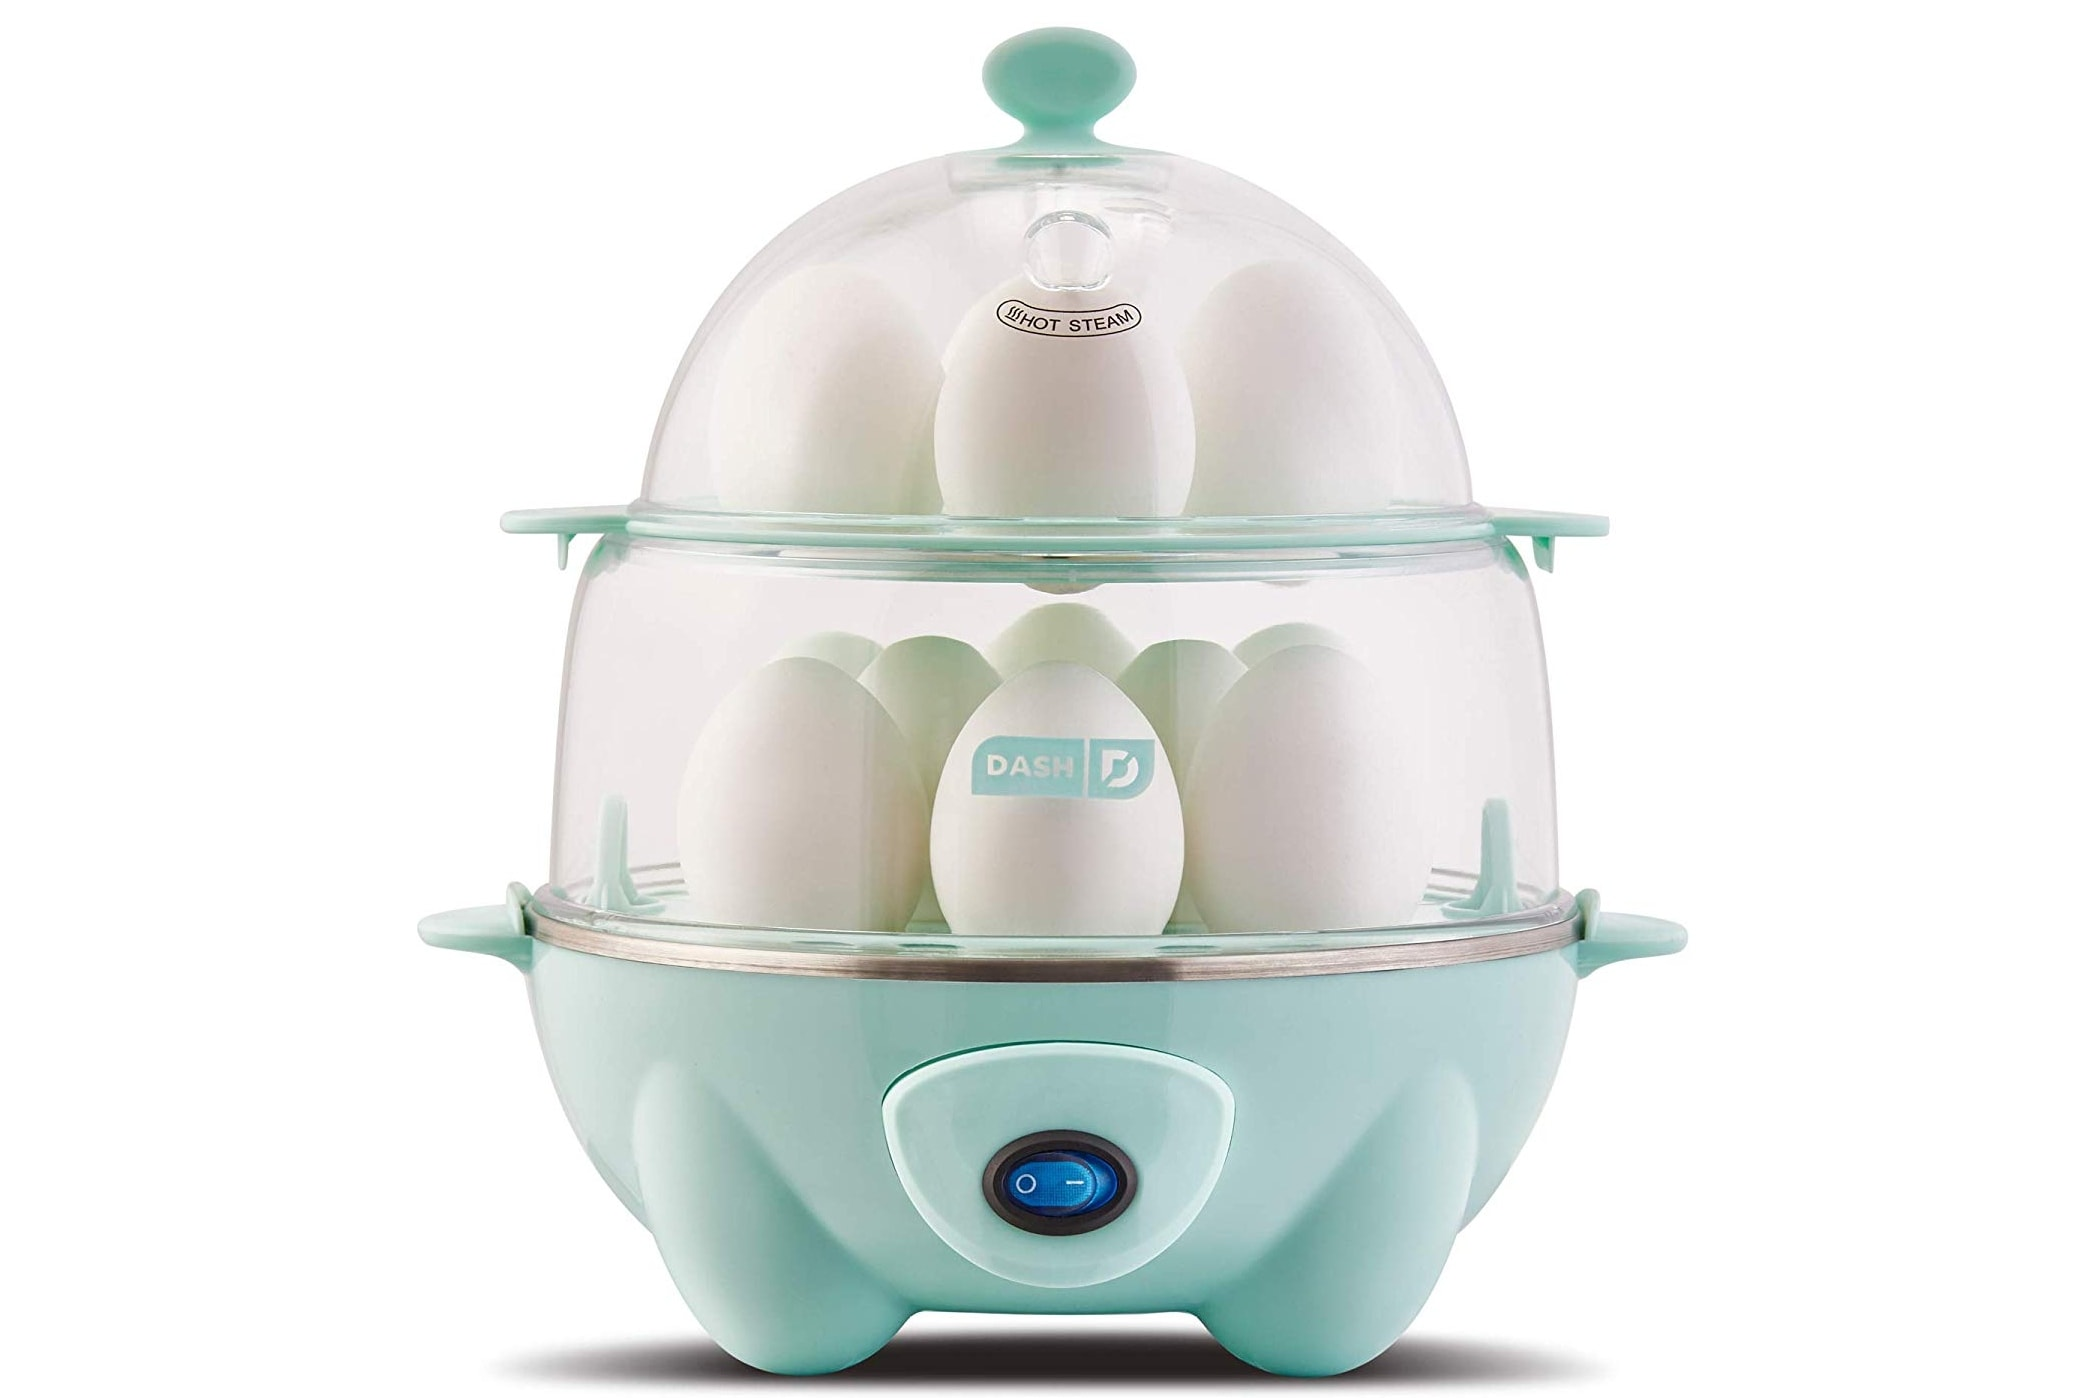 Apps and products Rapid Egg Cooker